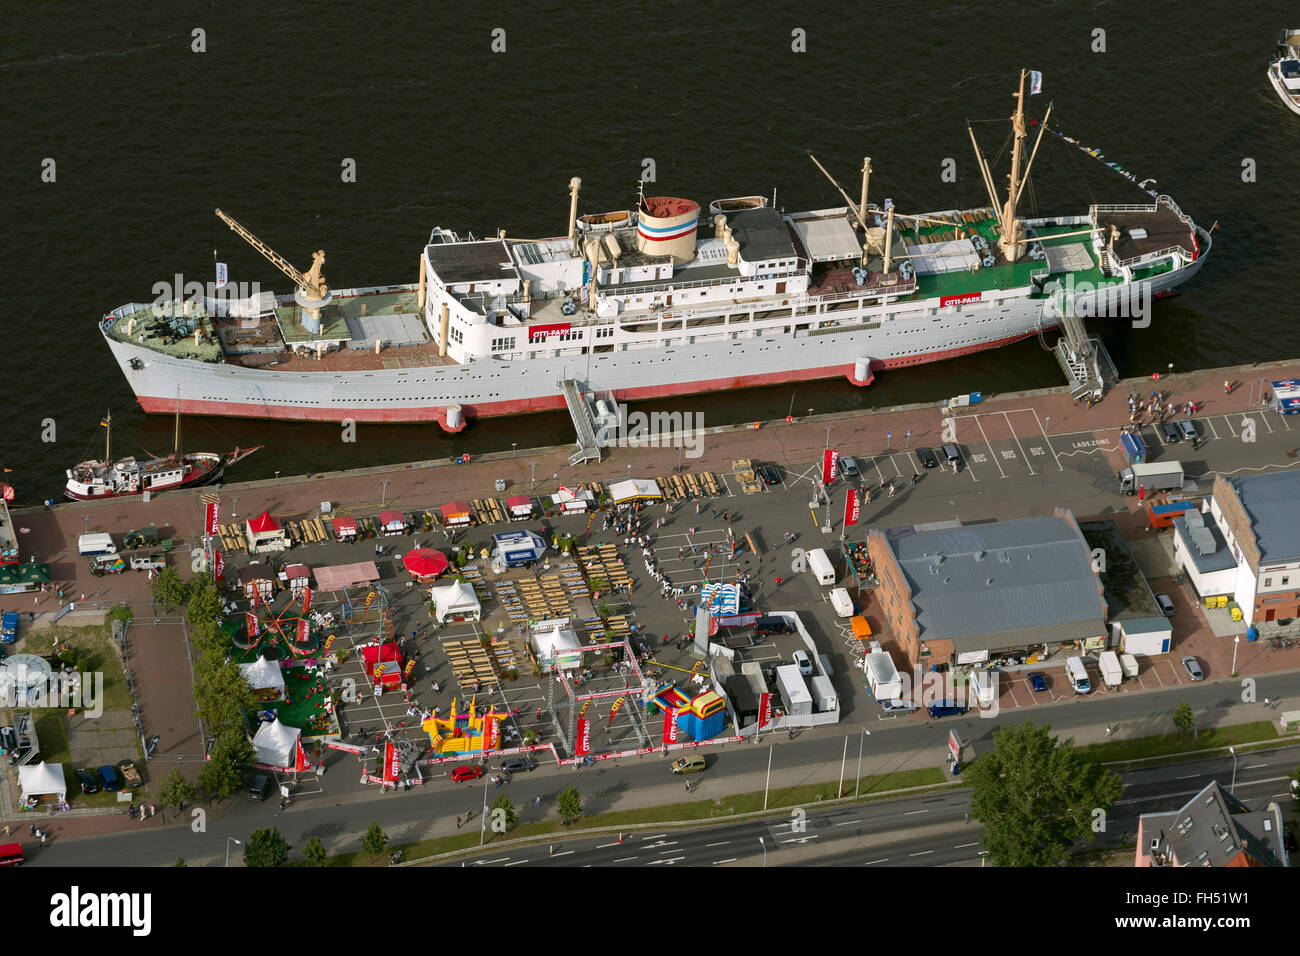 Aerial view, Citti Park, Rostock Hanse Sail, Rostock, Baltic Sea, Baltic Sea, Mecklenburg-Vorpommern, Germany, Europe, - Stock Image